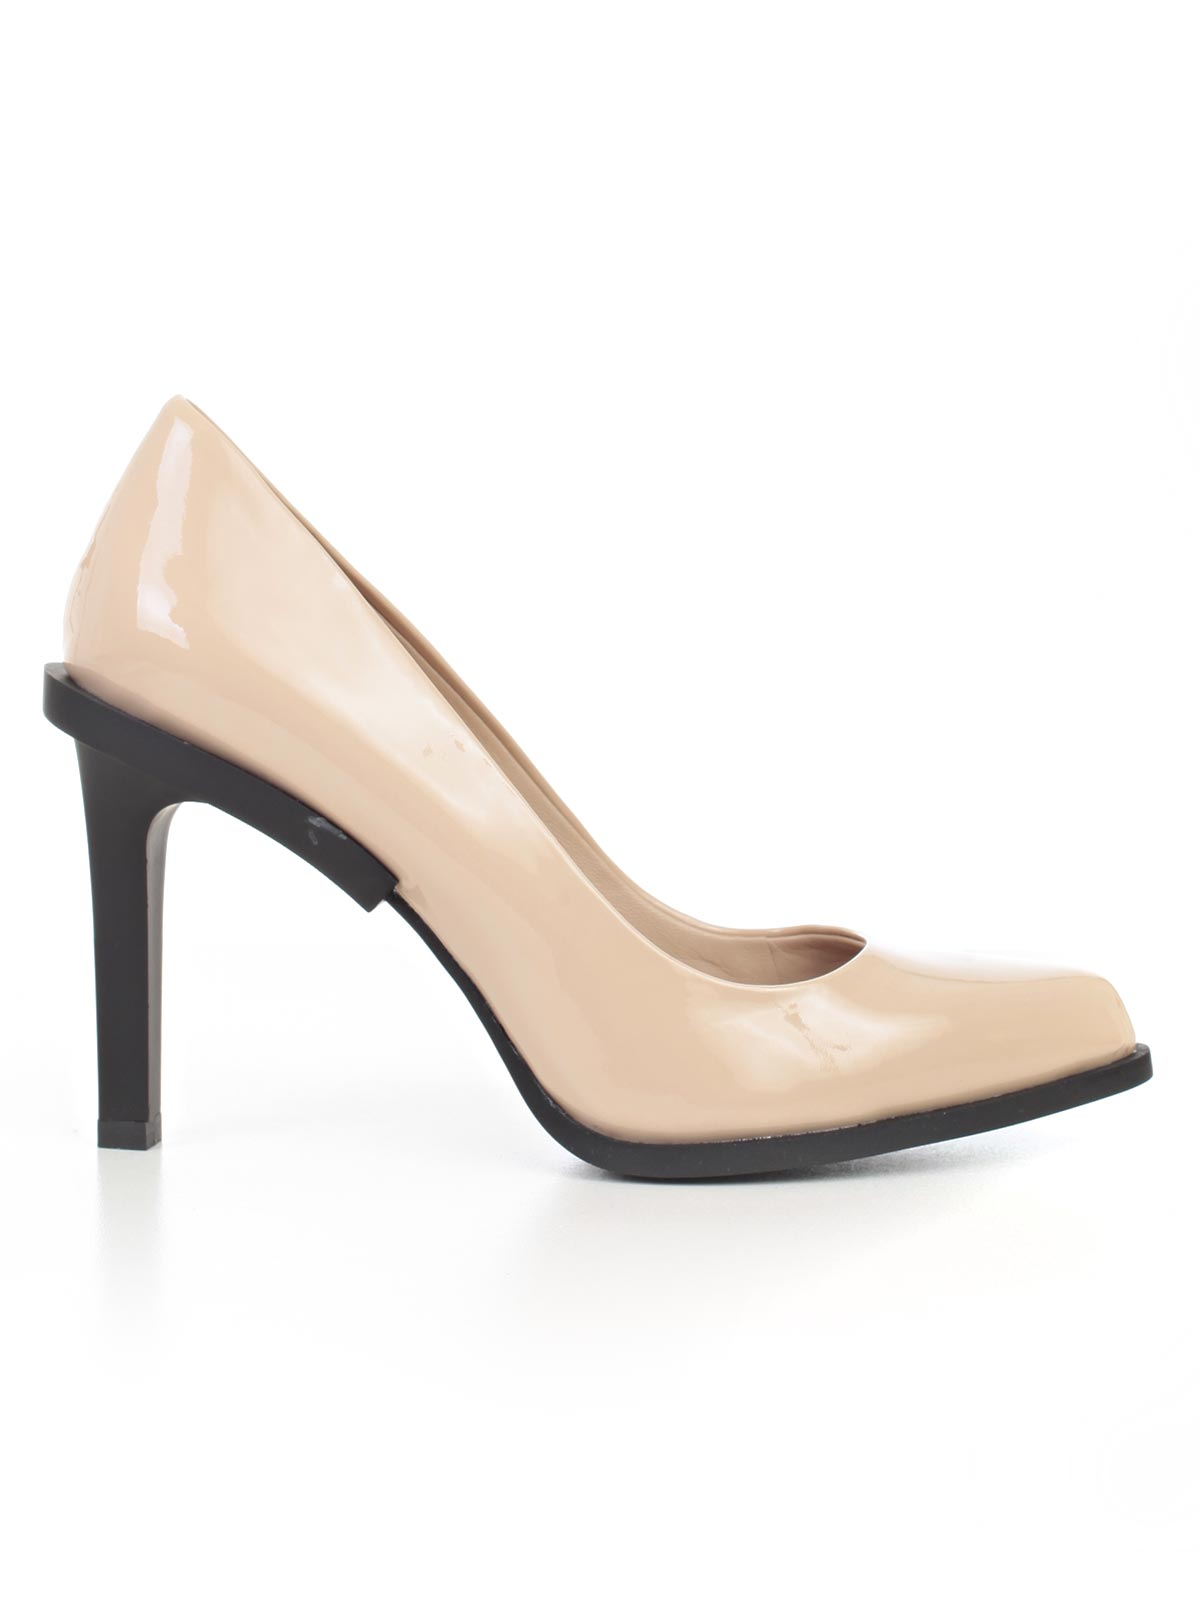 Picture of DKNY FOOTWEAR PRIM POINTY PUMP W/RUBBER 95MM